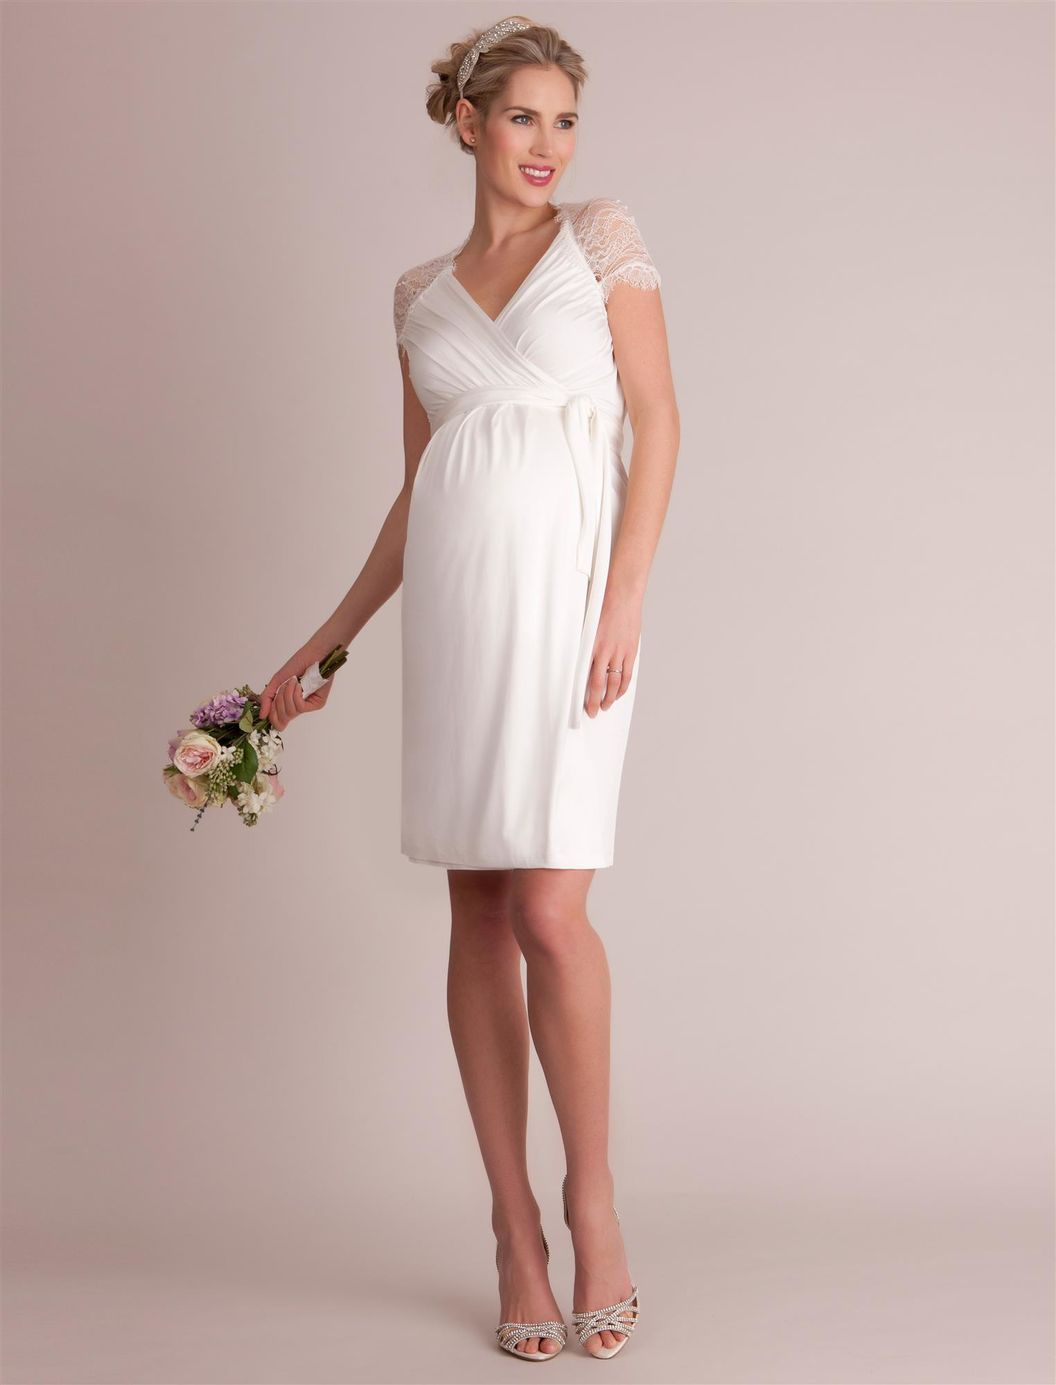 Seraphine Luxe Chelsey Maternity Wedding Dress baby shower rehearsal ...